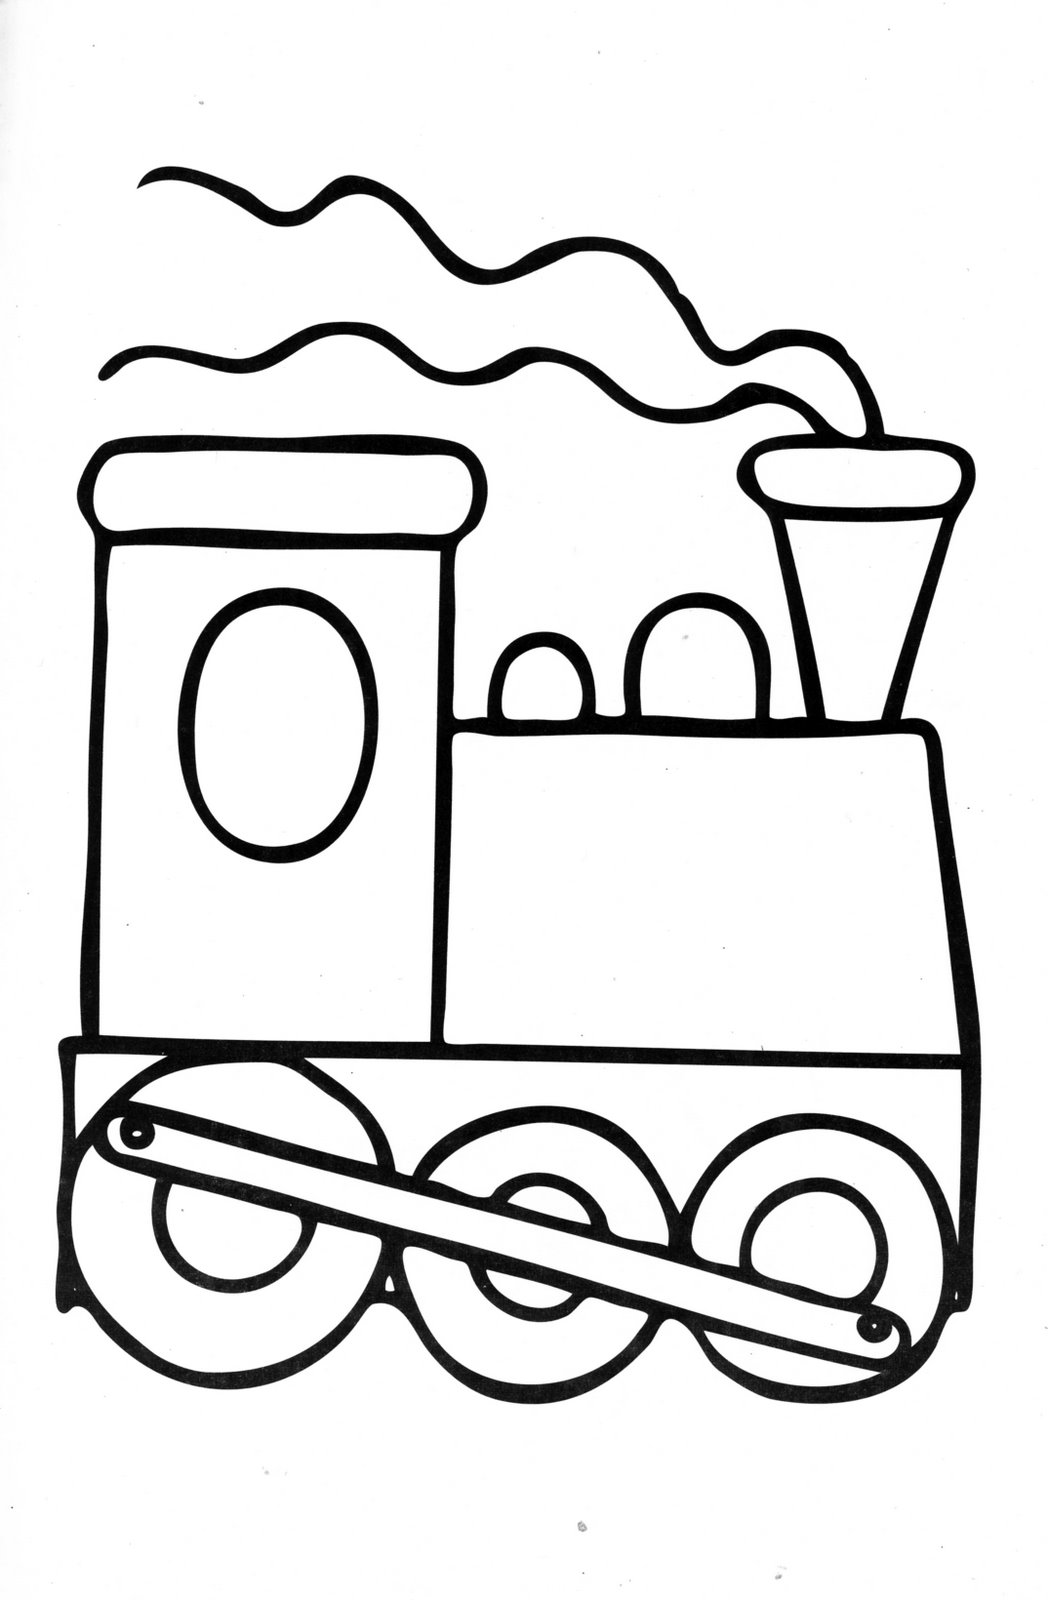 easy train coloring pages free printable train coloring pages for kids cool2bkids train coloring easy pages